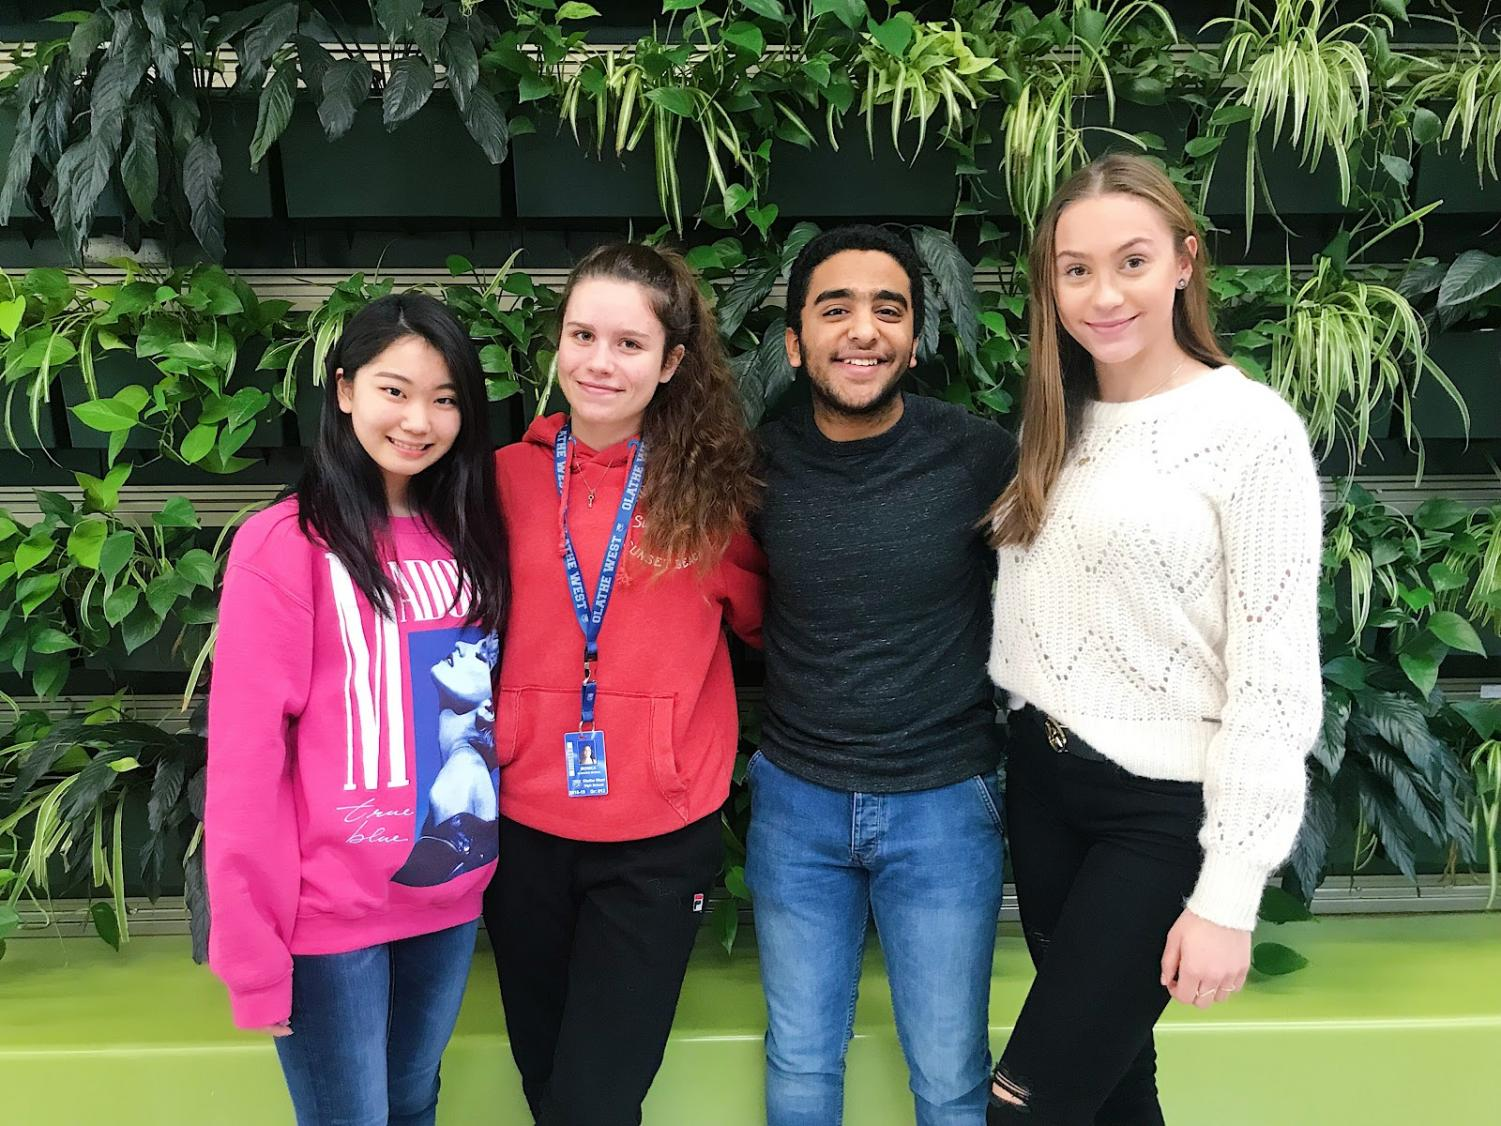 Foreign exchange students from Olathe West stand together for photo. Karen Fukami (Far left) Monica Almagro, Maged Wadi, and Sarah Mari Nielsen (Far right.)